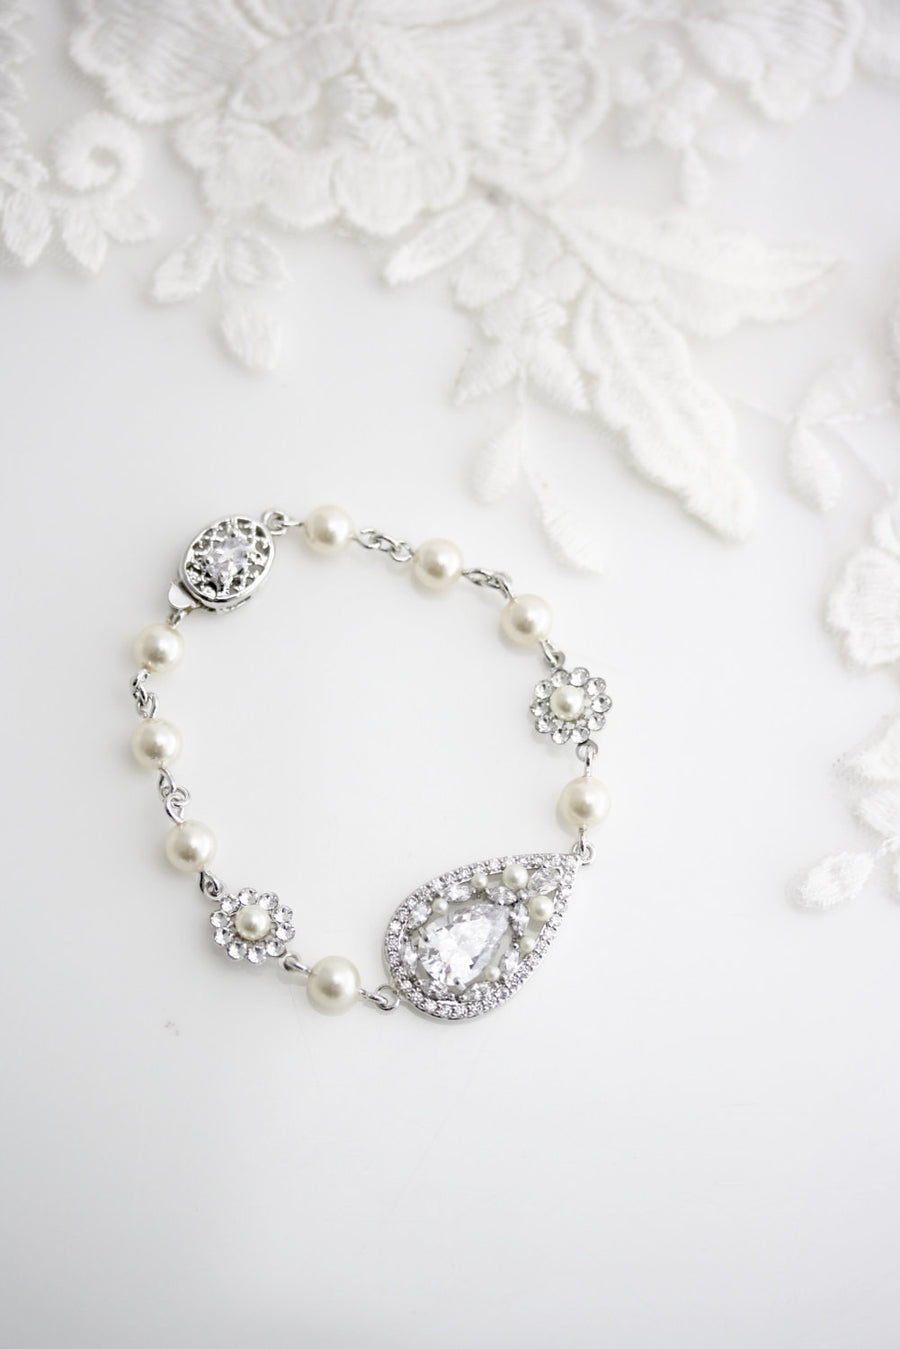 Vivienne Crystal Silver Wedding Bracelet